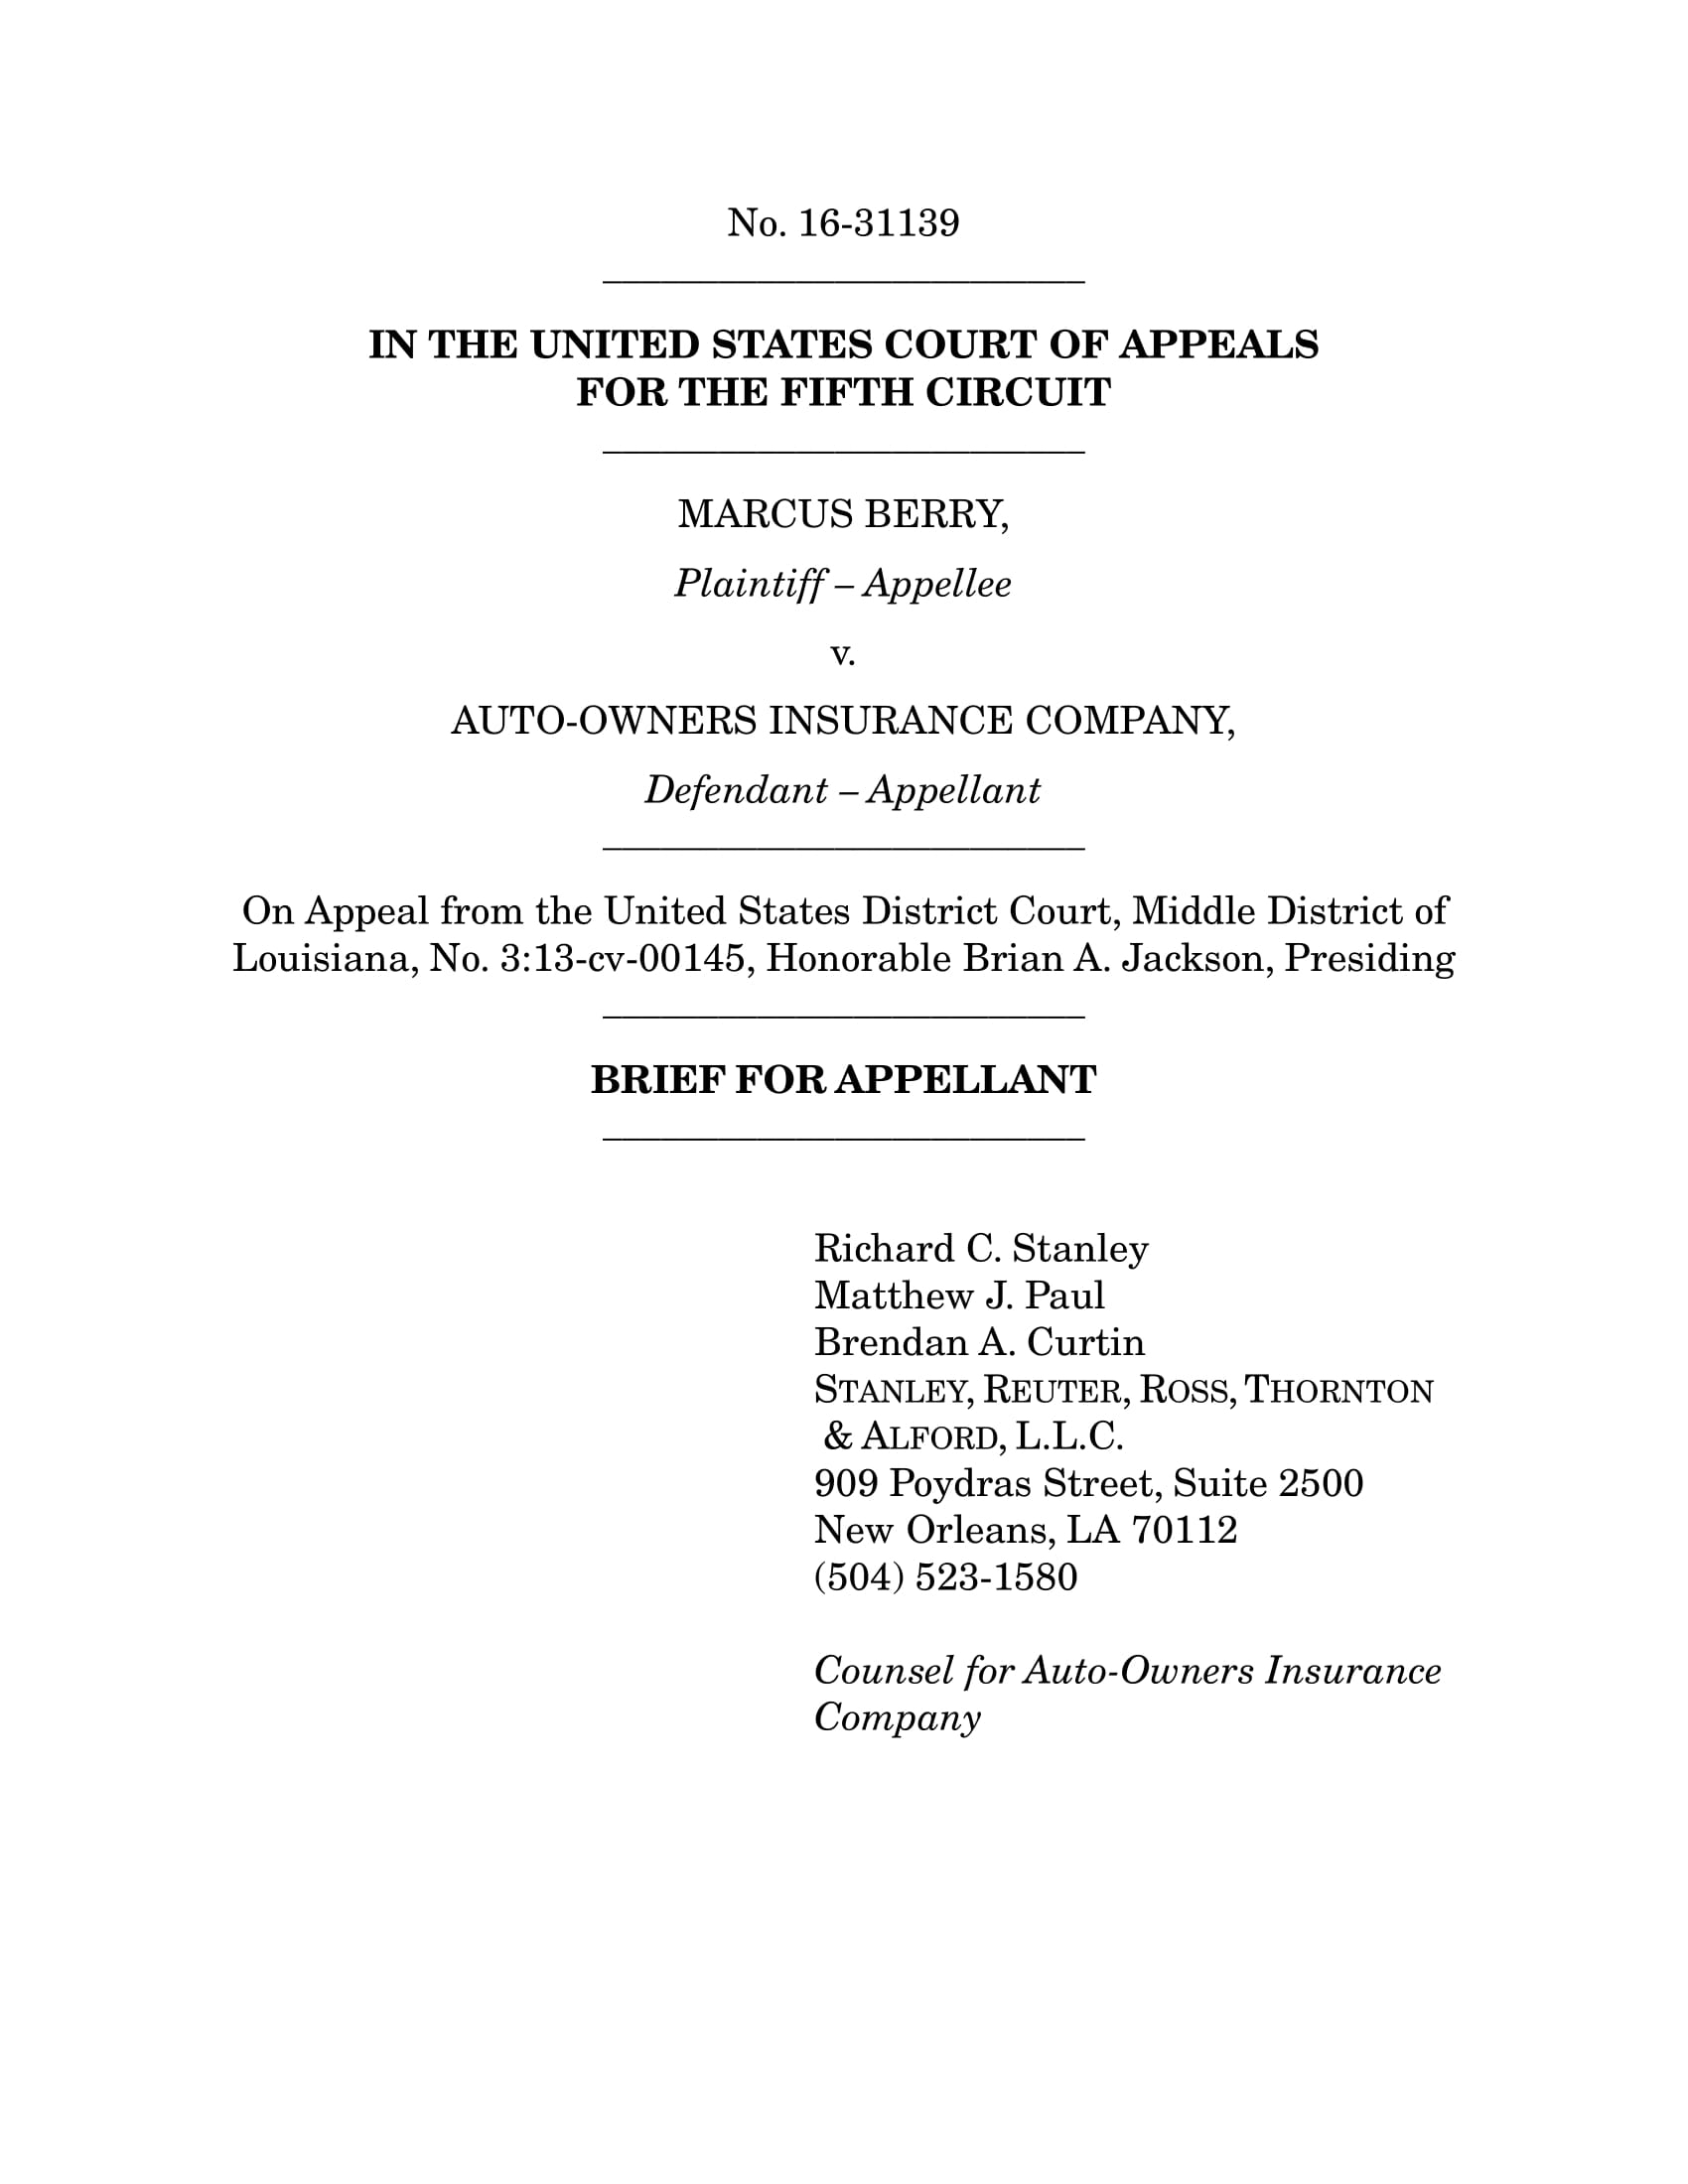 case brief example for appellant